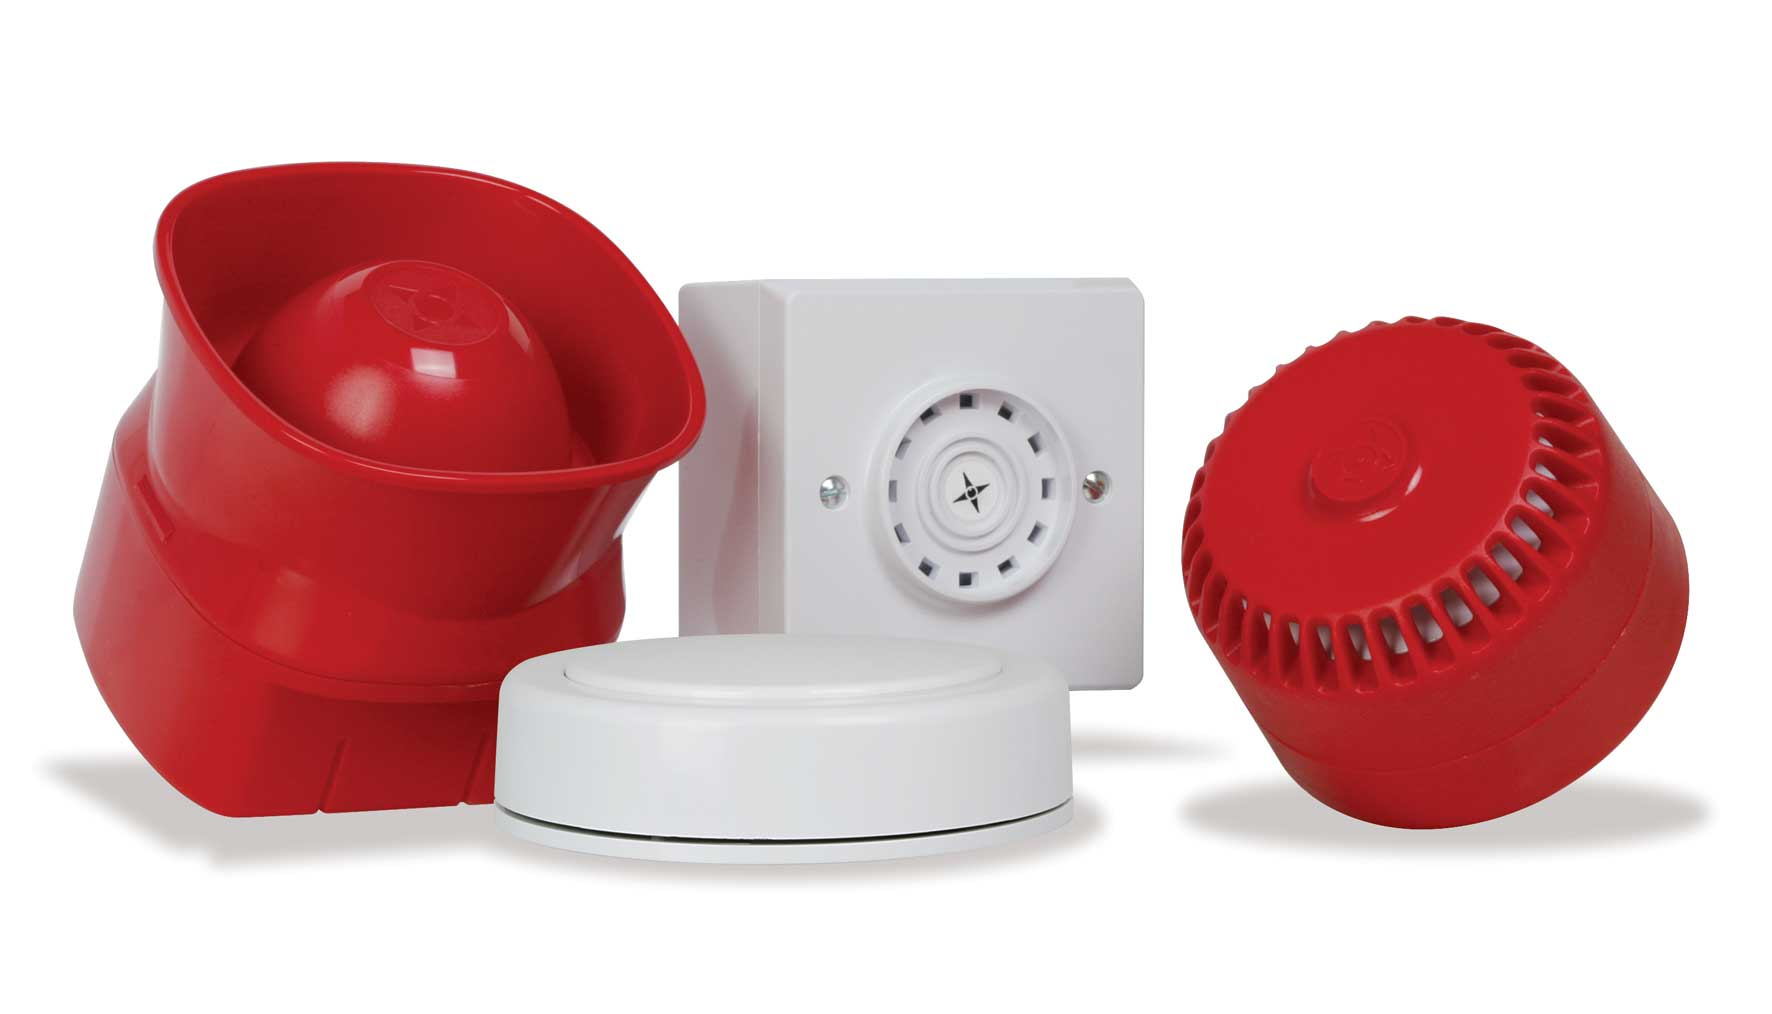 Blogdoorholderrelay in addition Burglar Alarm also Stock Images Fire Alarm Being Pulled Image4654614 together with Napco Security FWCFSLCPULL Addressable Slc Fire Pull Station p 466061 together with Watch. on fire alarm strobe